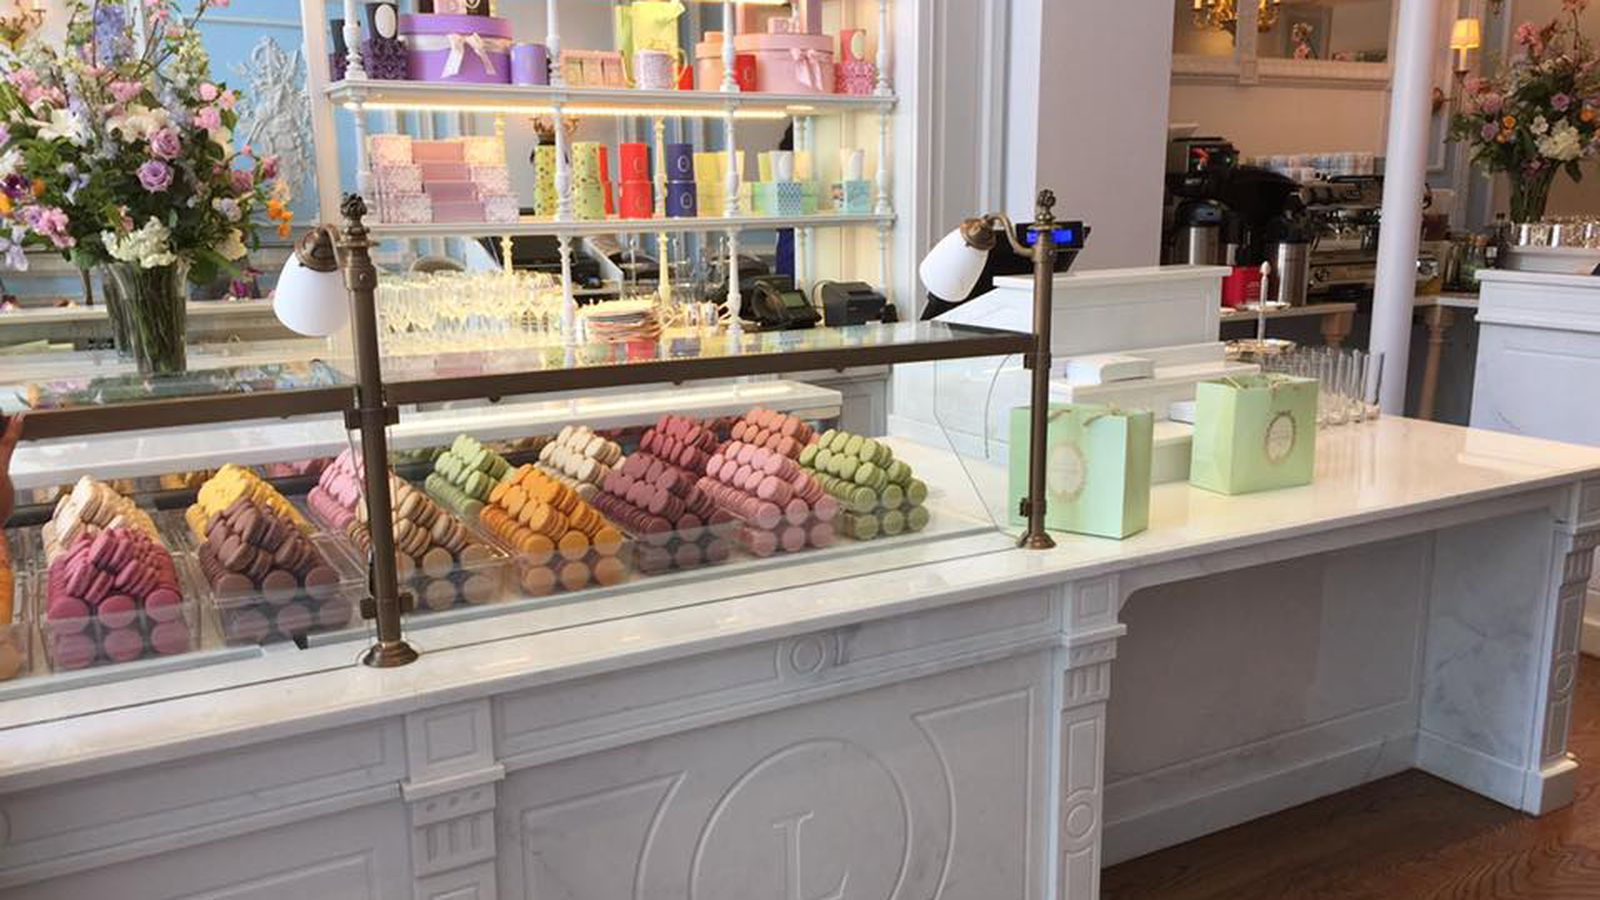 Ladur 233 E Georgetown And All Its Macaron Glory Now